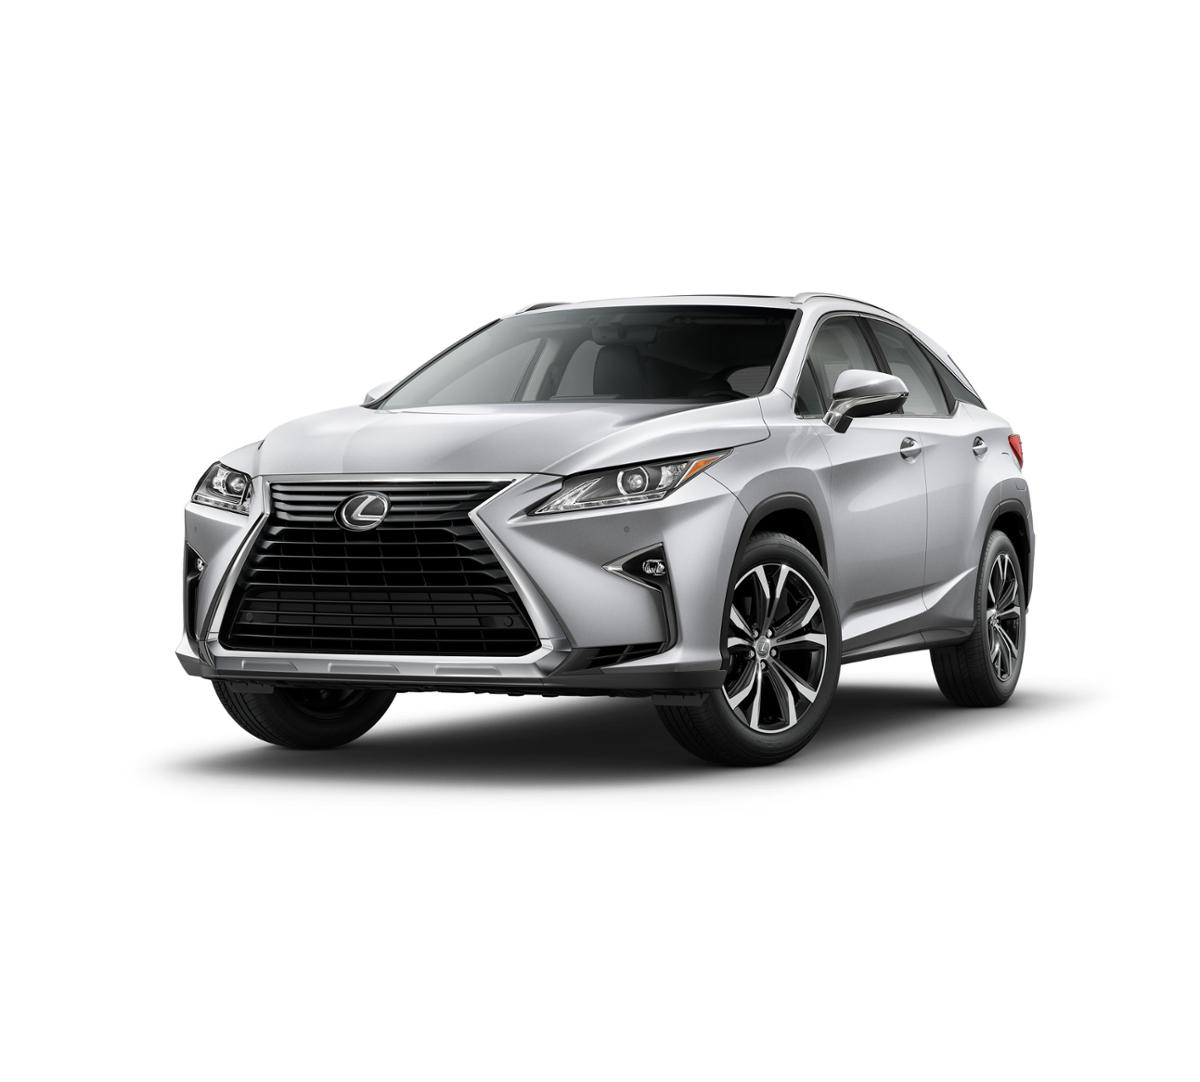 new 2018 lexus rx 350 silver lining metallic for sale in houston pearland league city tx. Black Bedroom Furniture Sets. Home Design Ideas